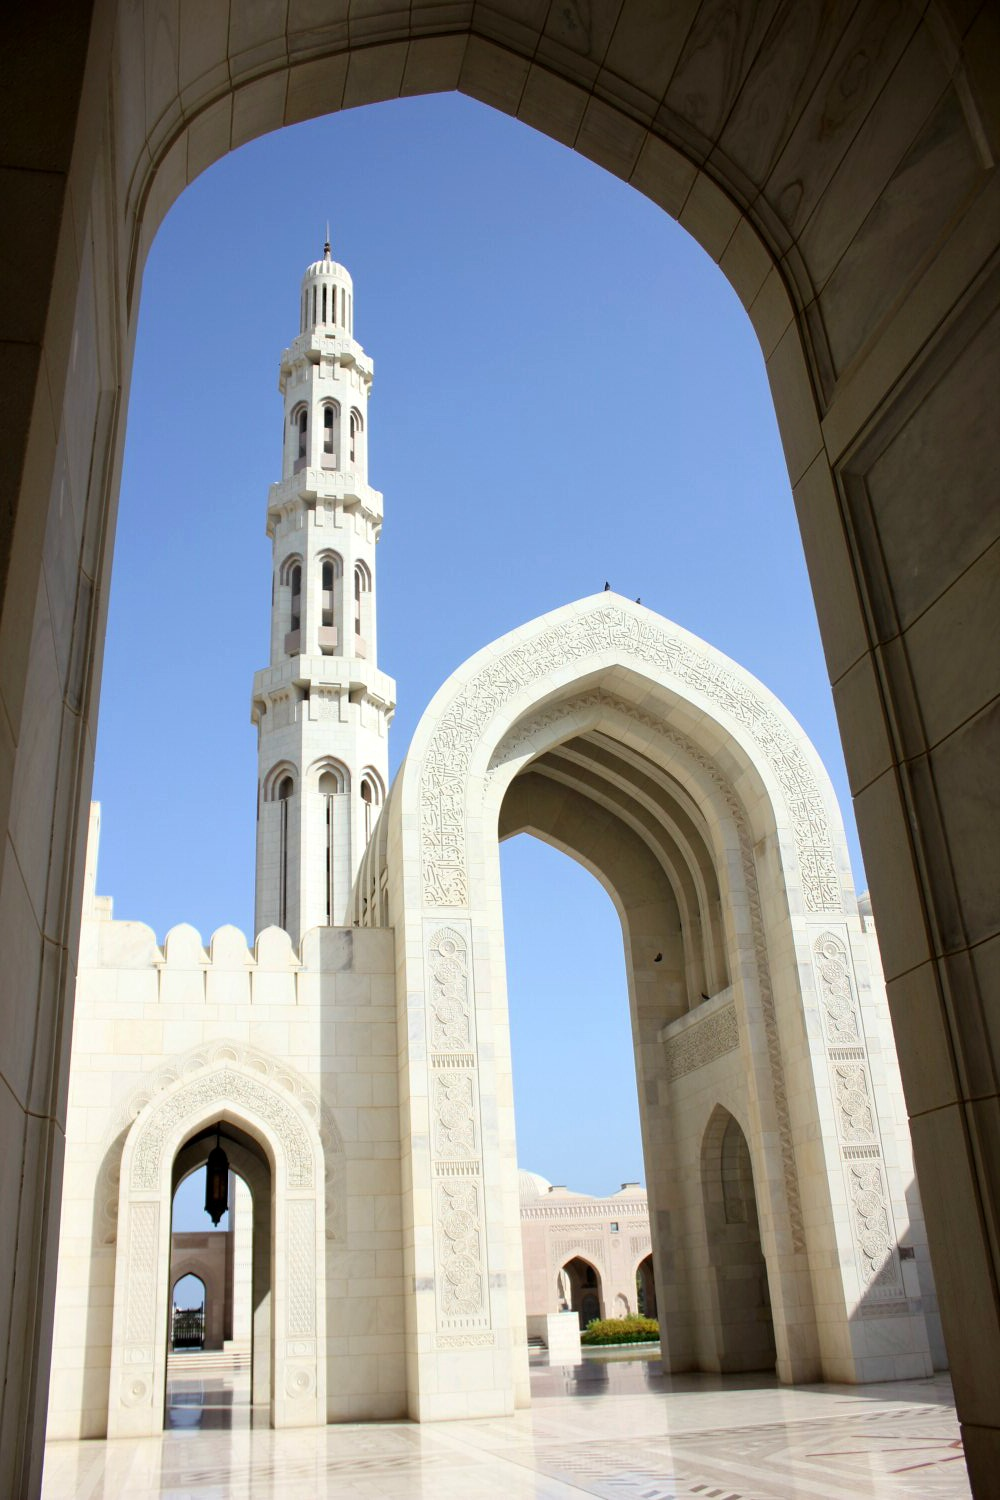 A view of one of the ornate white minarets above an archway at the Sultan Qaboos Grand Mosque in Muscat Oman - the beautiful architecture is one of my nine reasons to visit Oman with kids